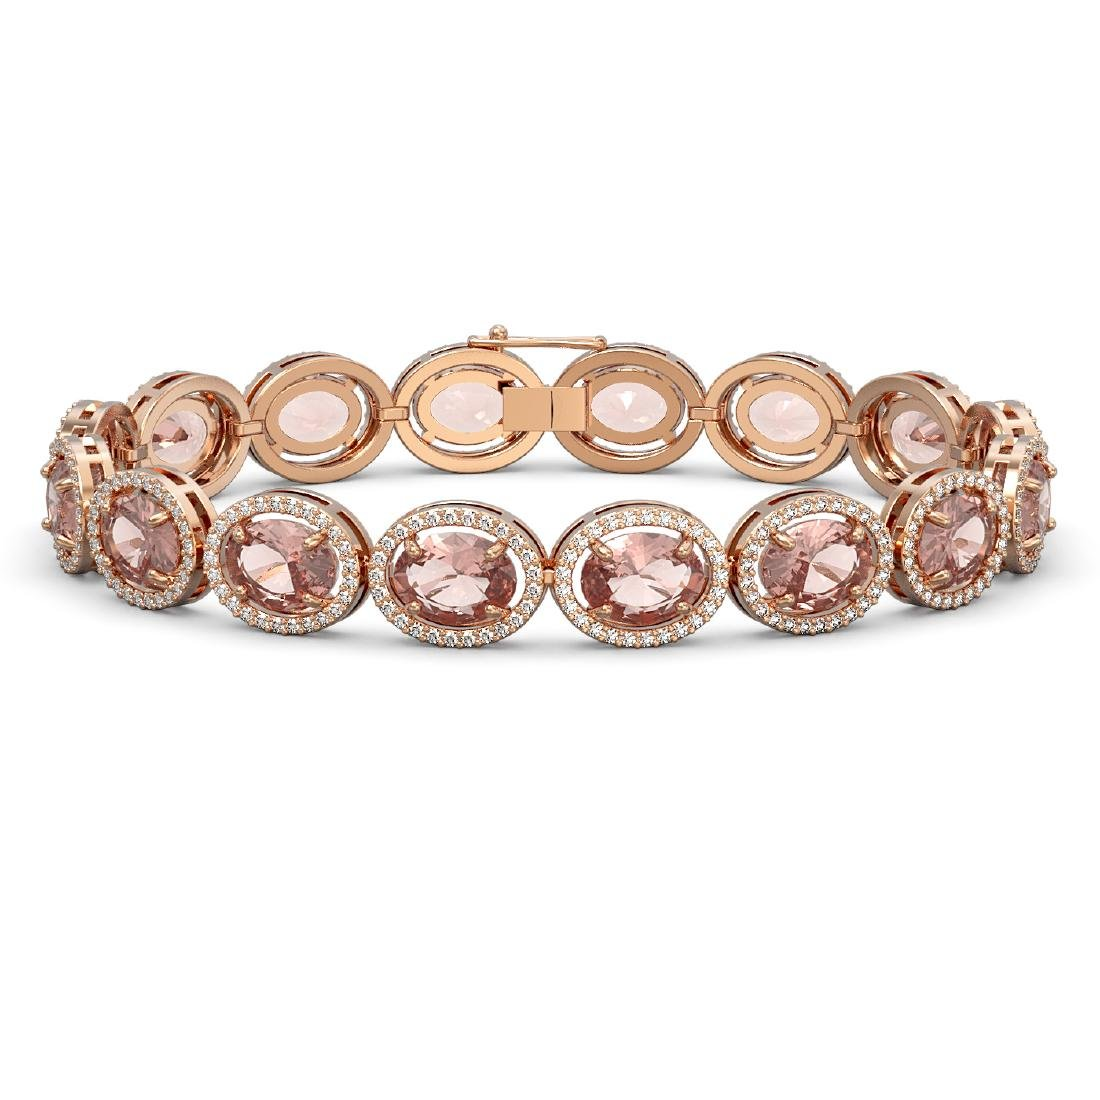 22.8 CTW Morganite & Diamond Halo Bracelet 10K Rose